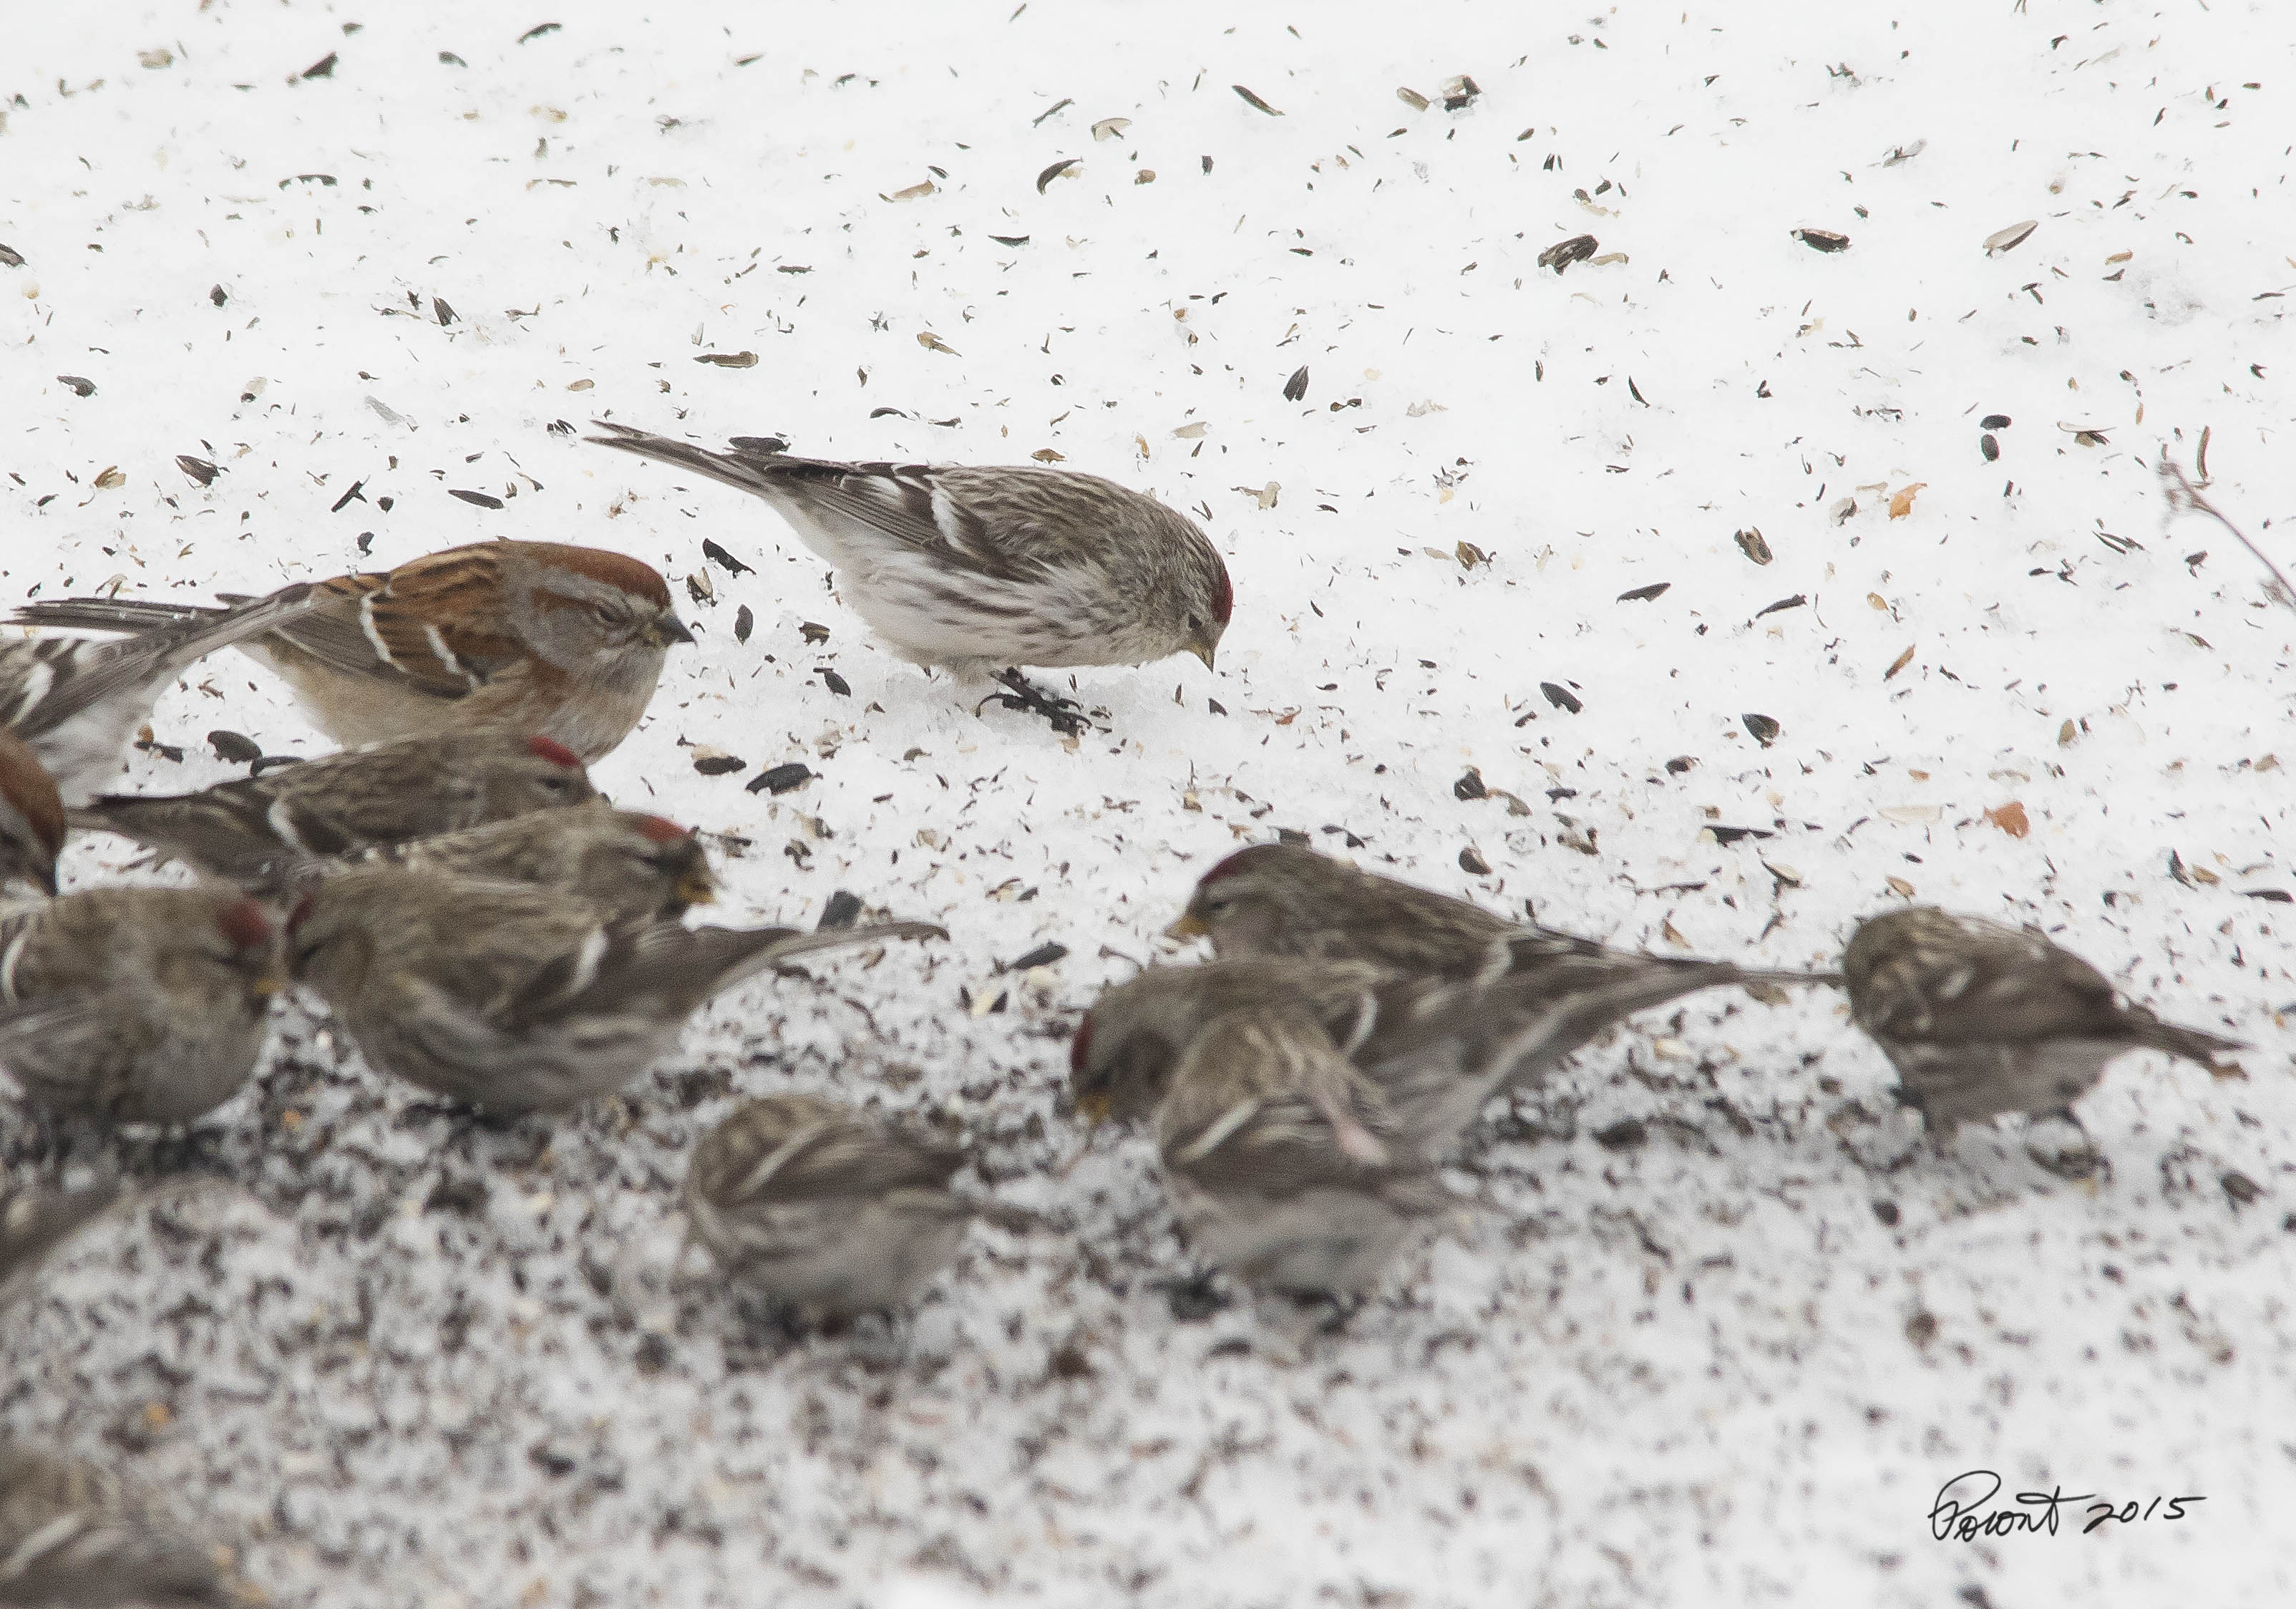 Possible Hoary Redpoll.. Small pointed bill pushed inward and white undertail coverts